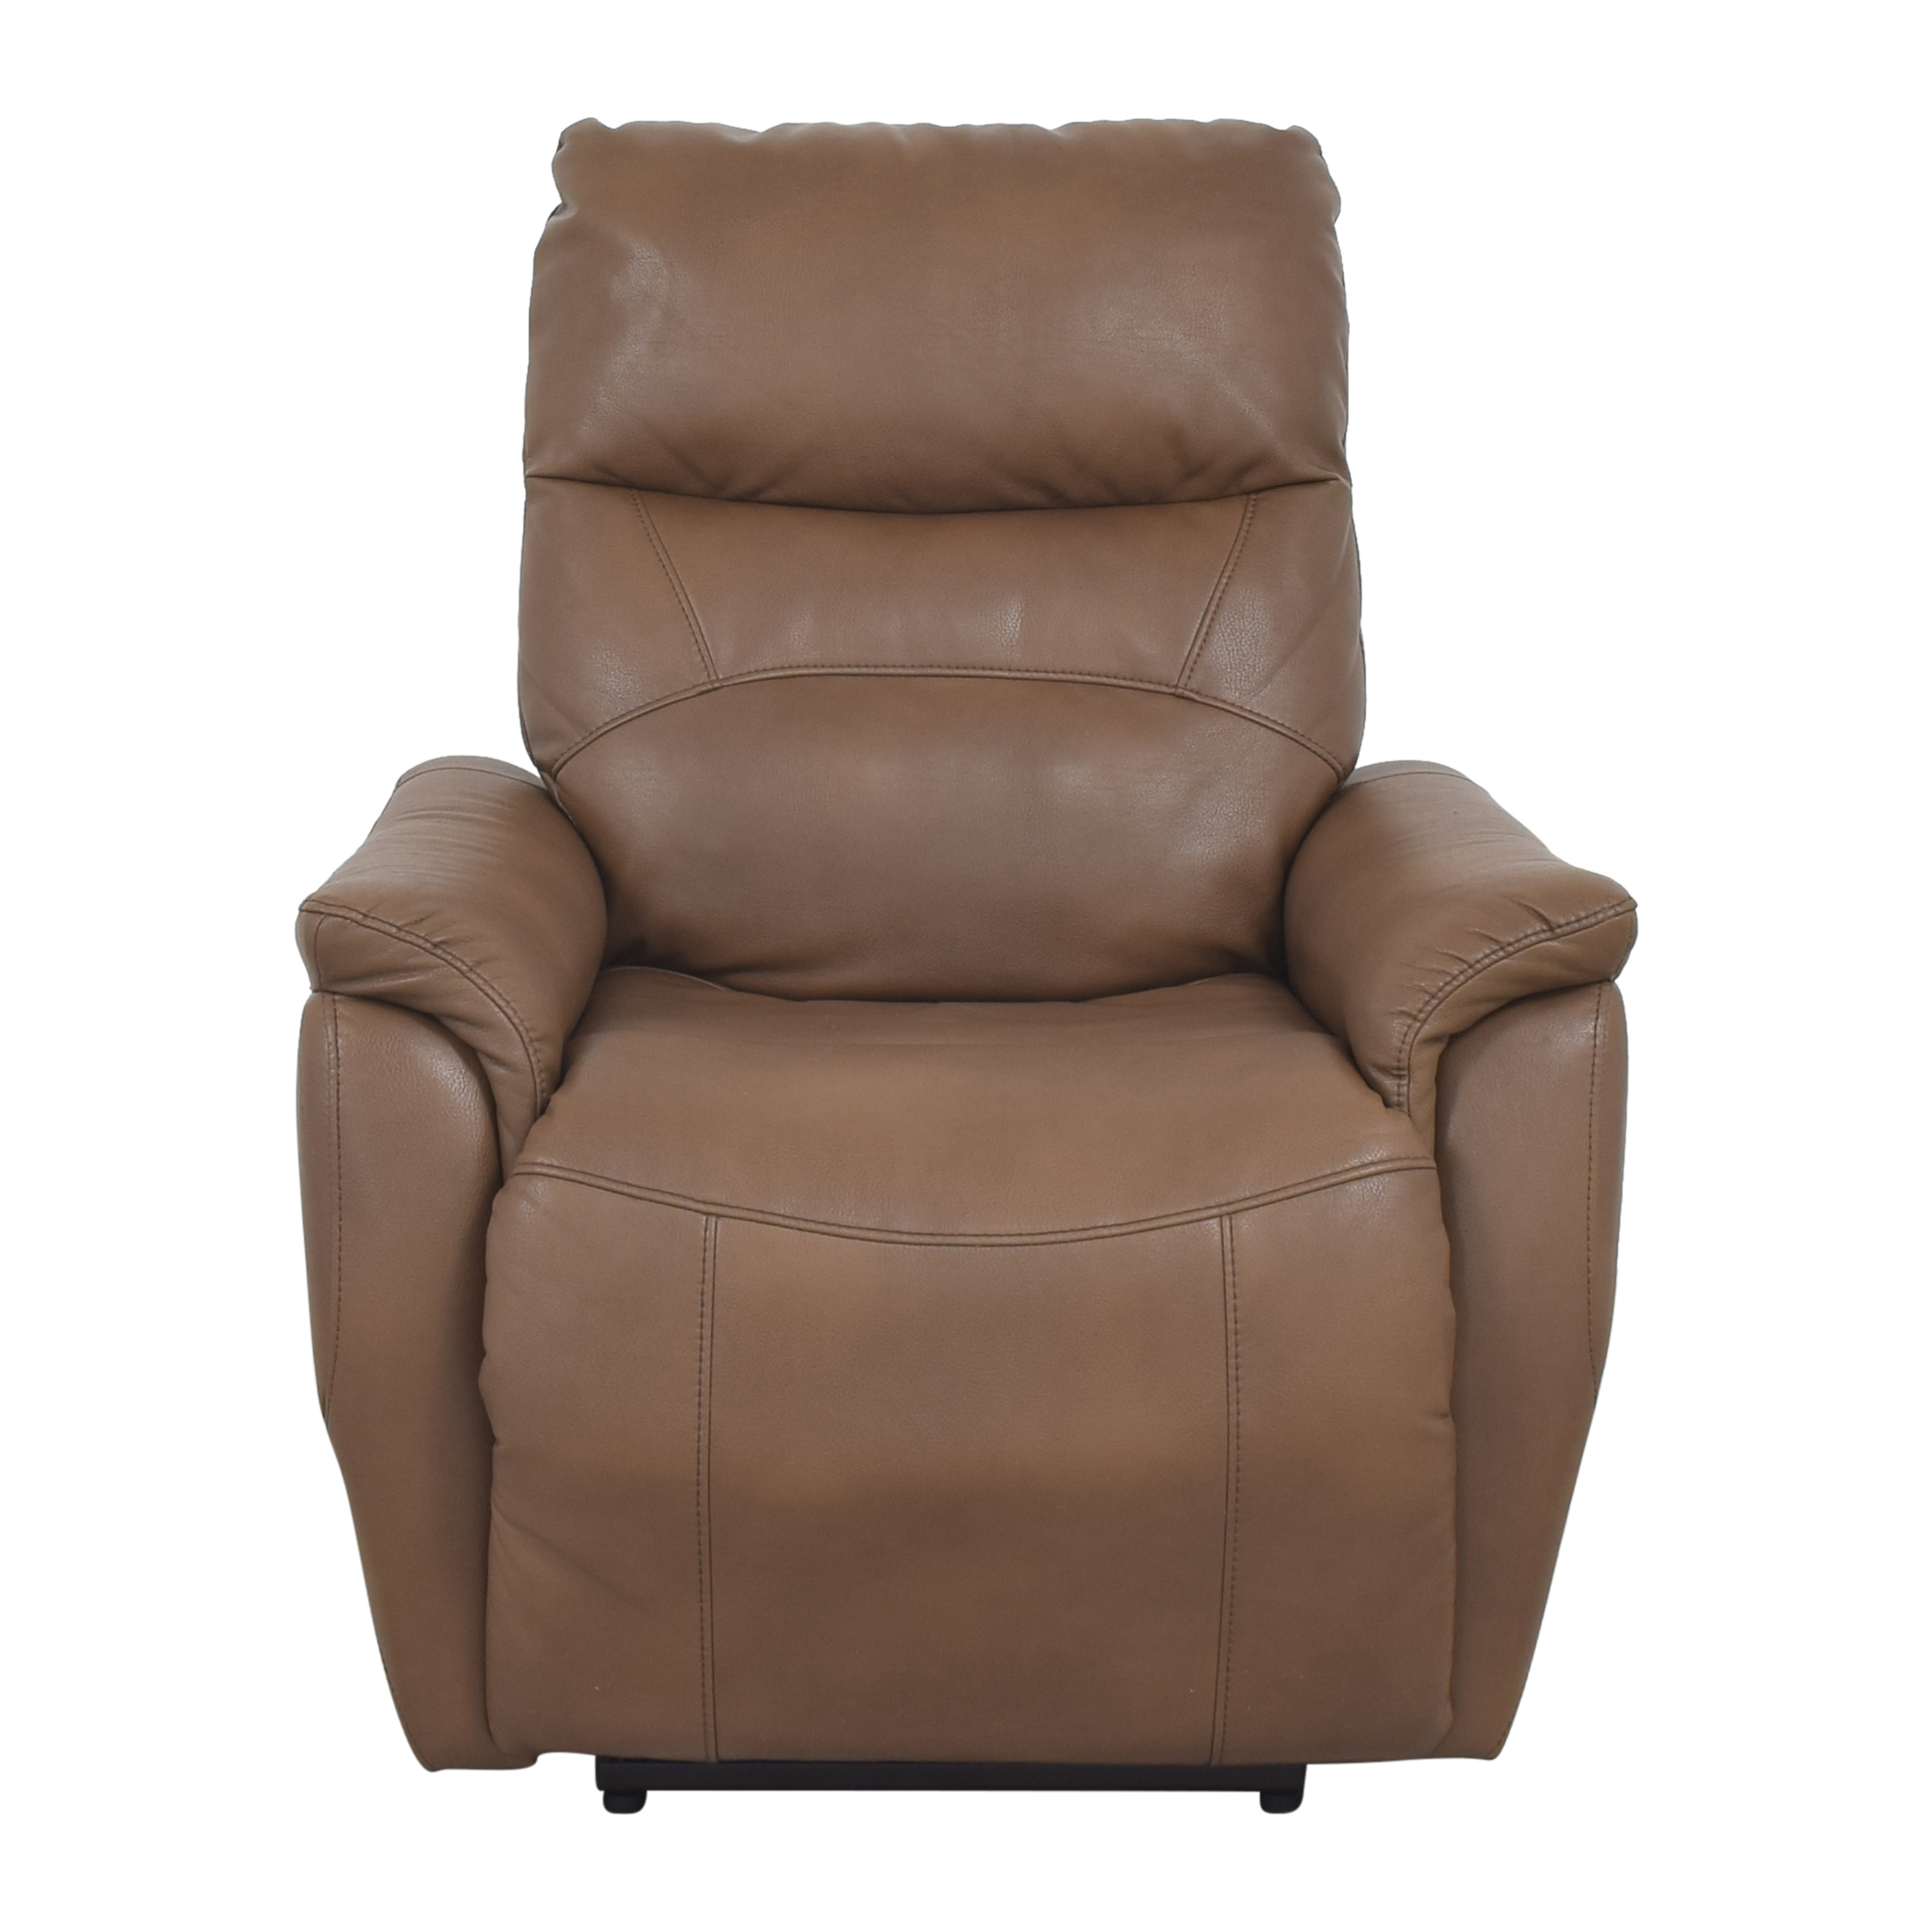 Reclining Accent Chair used